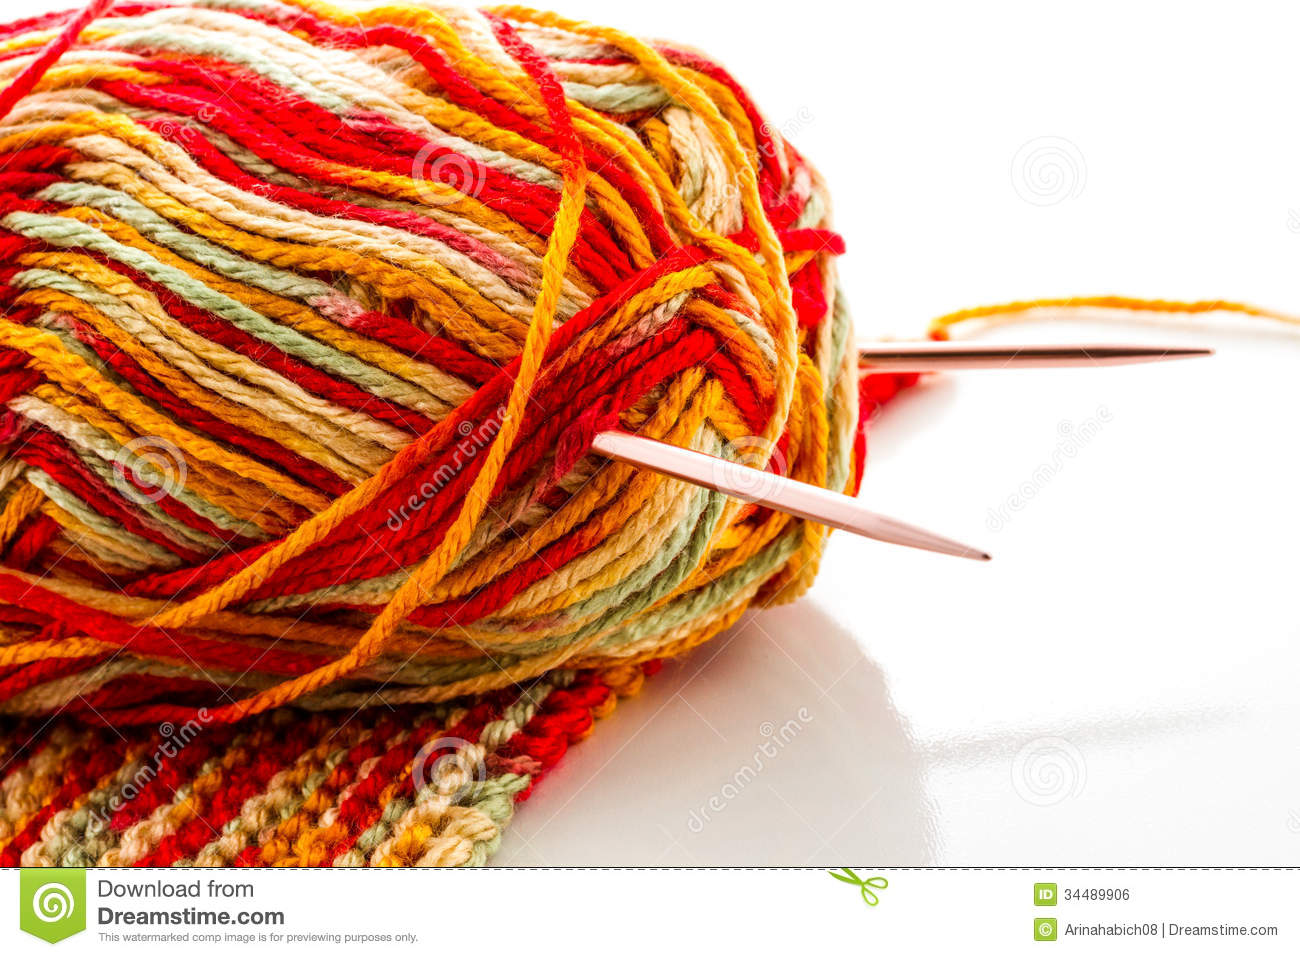 Best Knitting Stitches For Multicolor Yarn : Knitting Royalty Free Stock Image - Image: 34489906